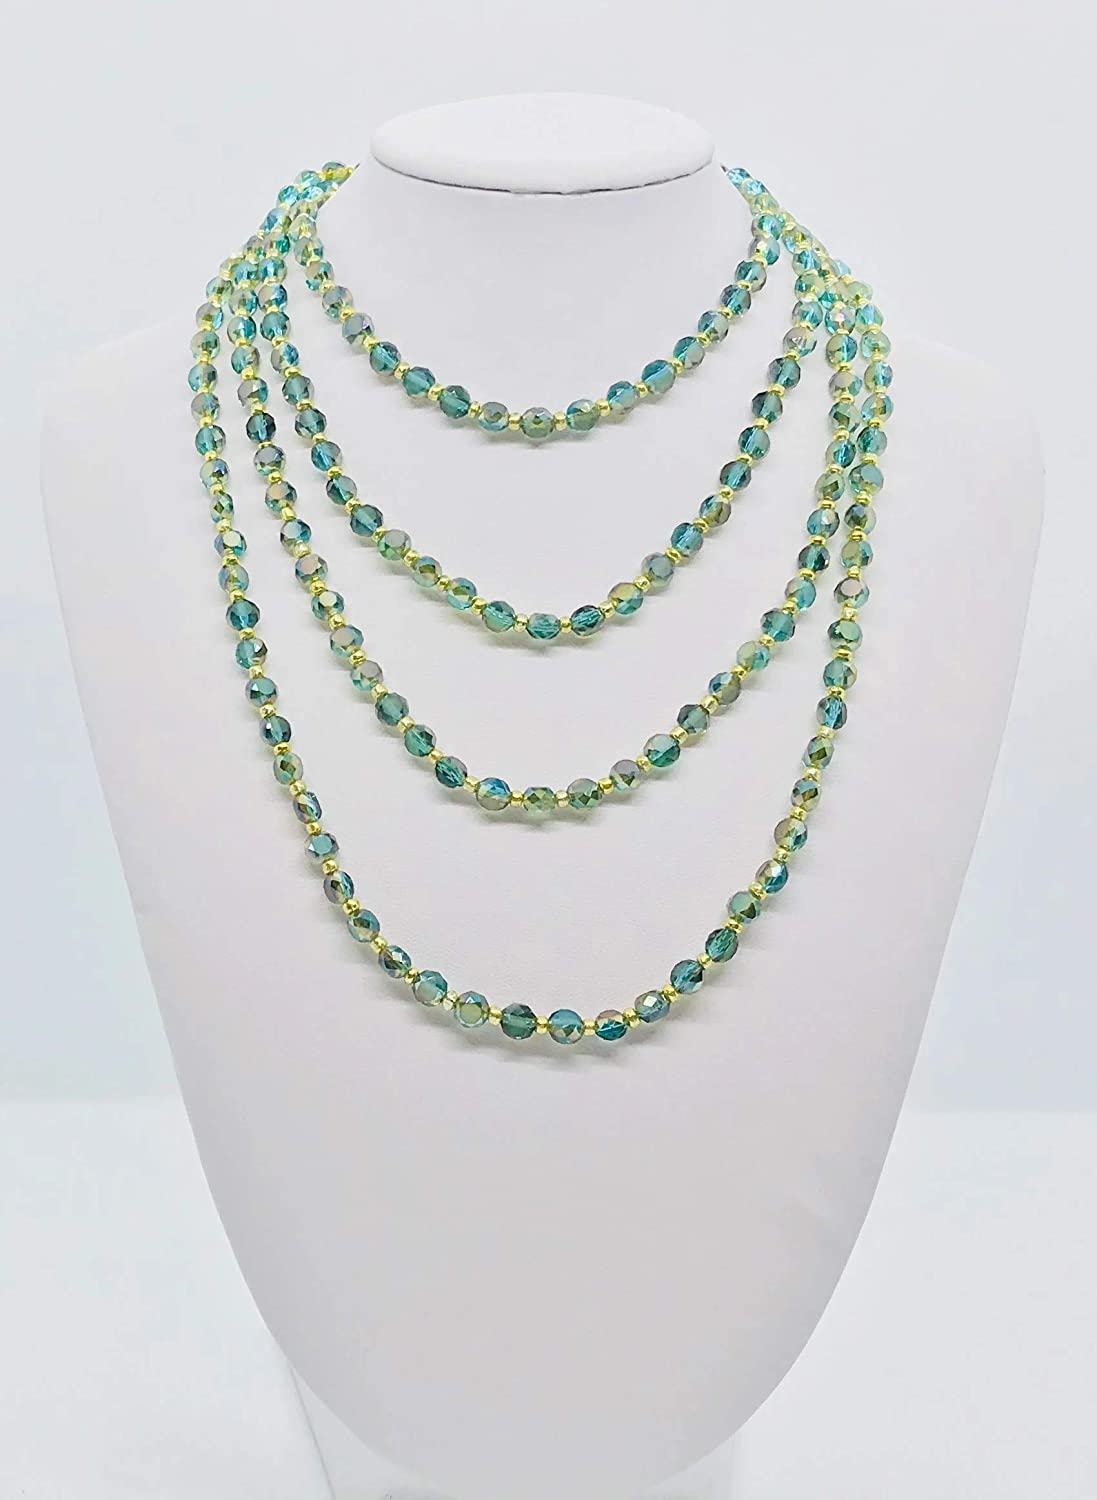 Magnolia /& Peach Jewelry Green and Gold Glass Bead Necklace N120